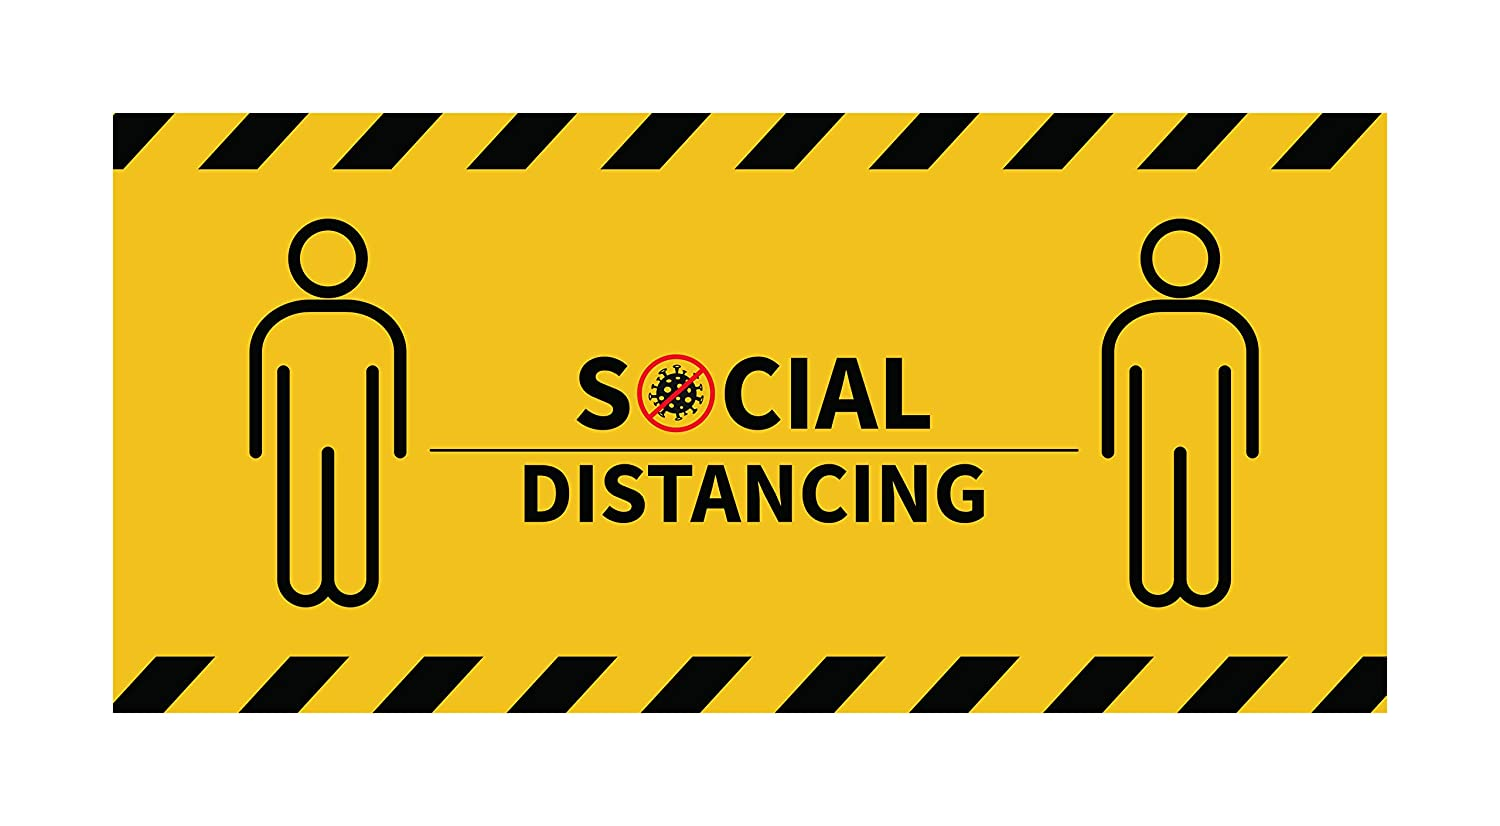 Social Distancing Sign Decal,Social Distancing Floor Sticker,Keep Safe Distance Sign for Workplace,Shops and Crowd Control Guidance,Yellow,14.4 X 3 INCH-10 pcs